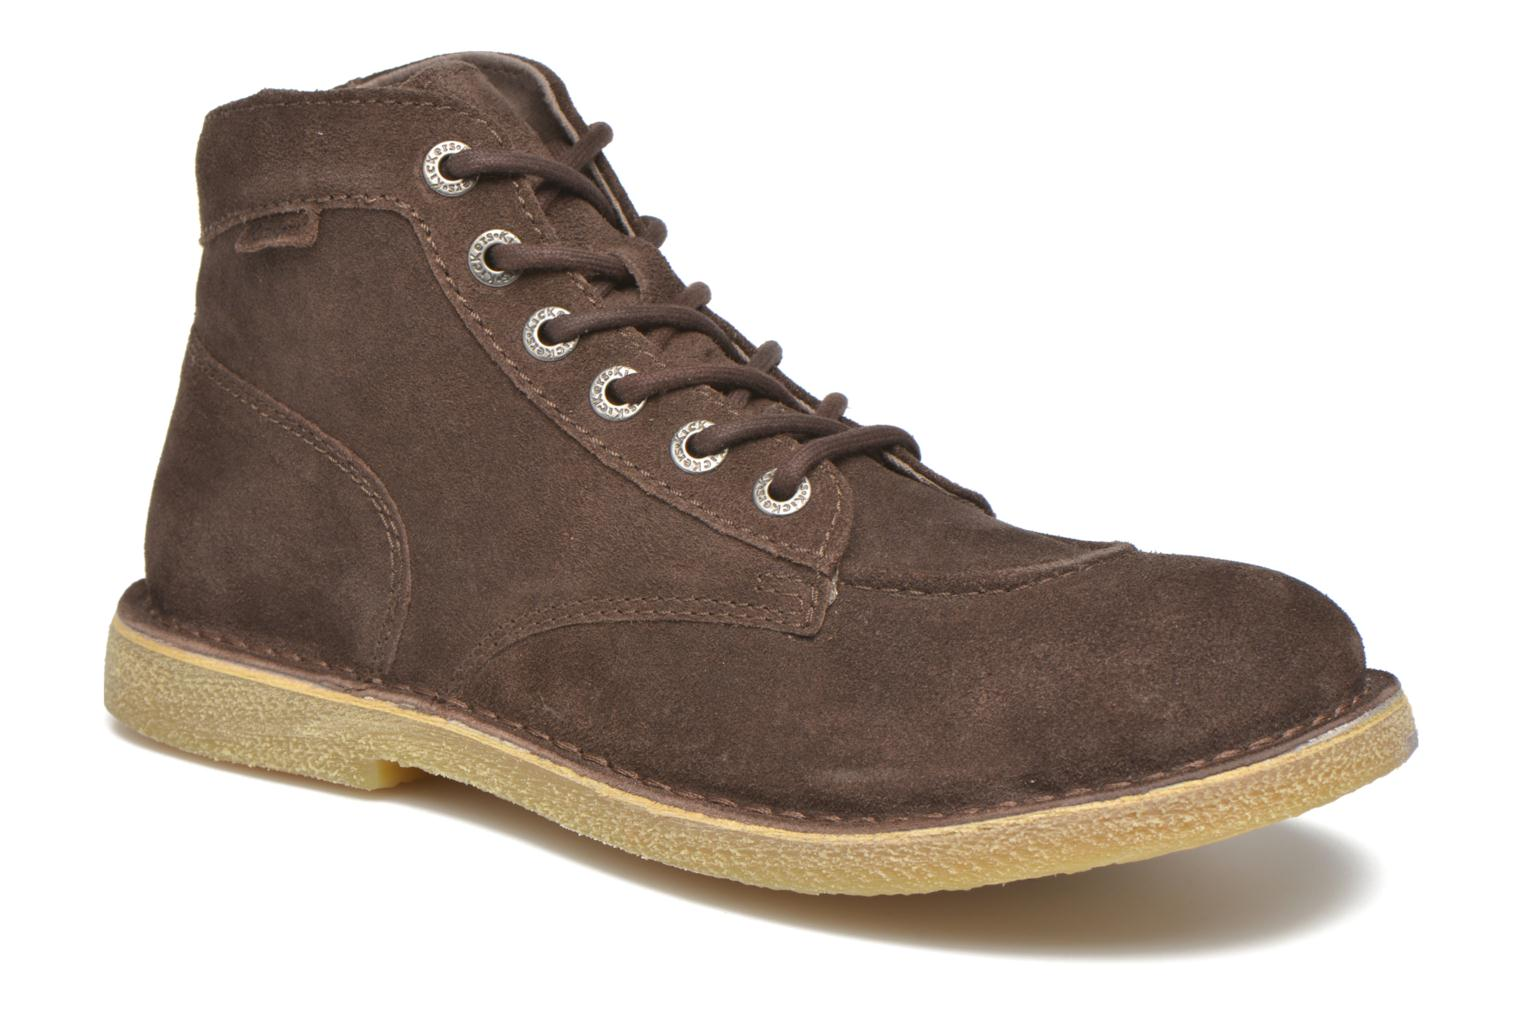 Bottines Boots 263697 Et Orilegend Kickers marron Sarenza Chez Ega8xqcw